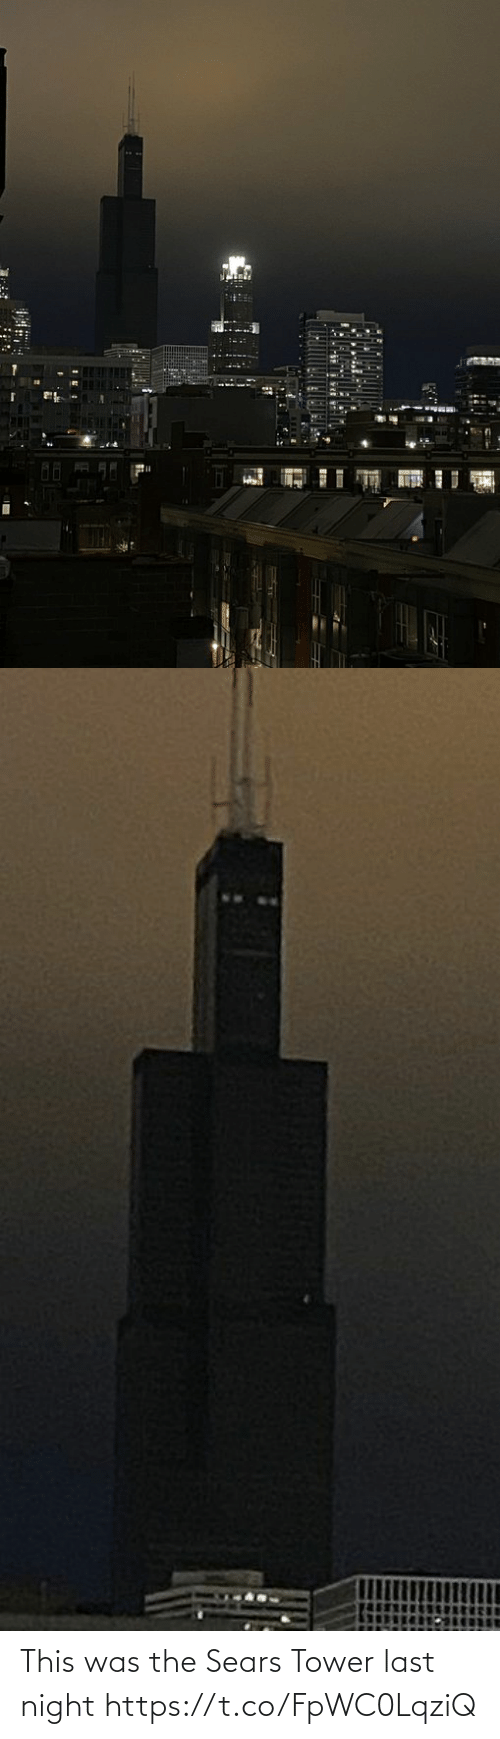 night: This was the Sears Tower last night https://t.co/FpWC0LqziQ